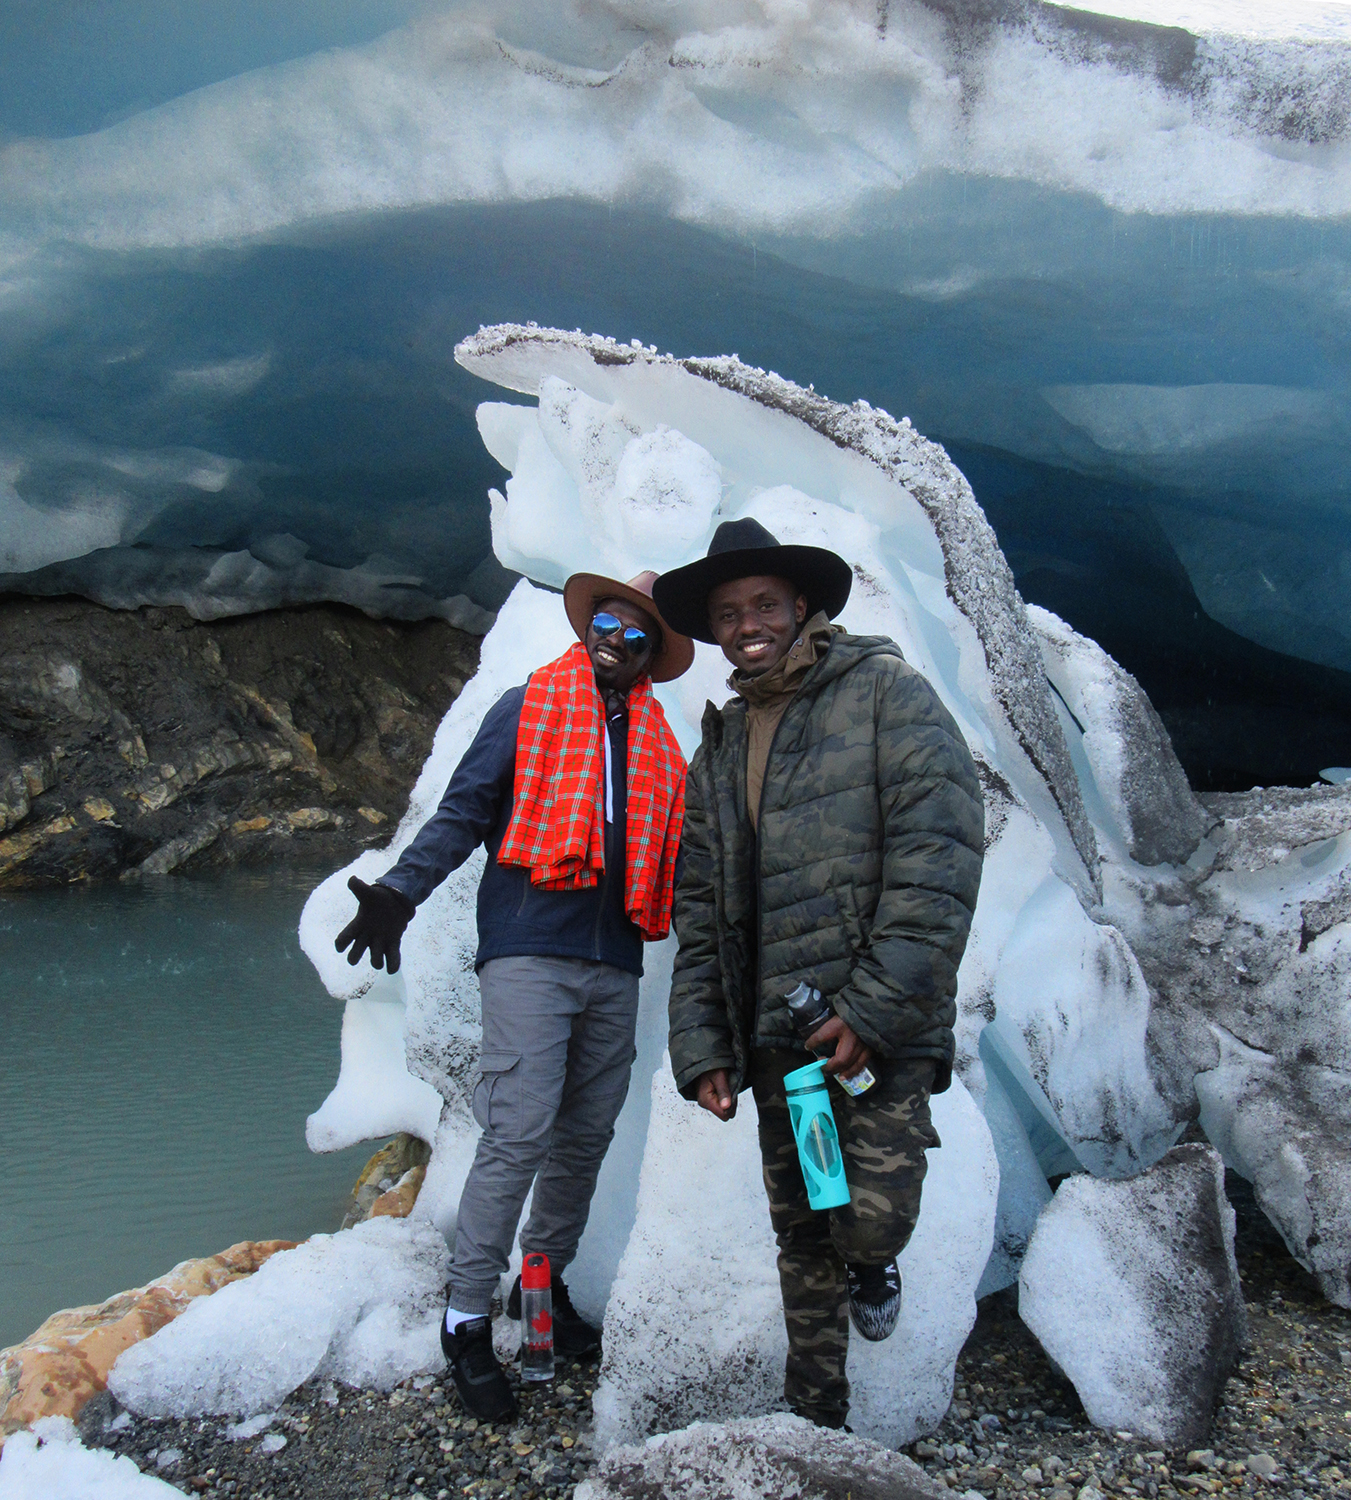 Exploring the ice cave that recently formed at the toe of the Bow Glacier. =